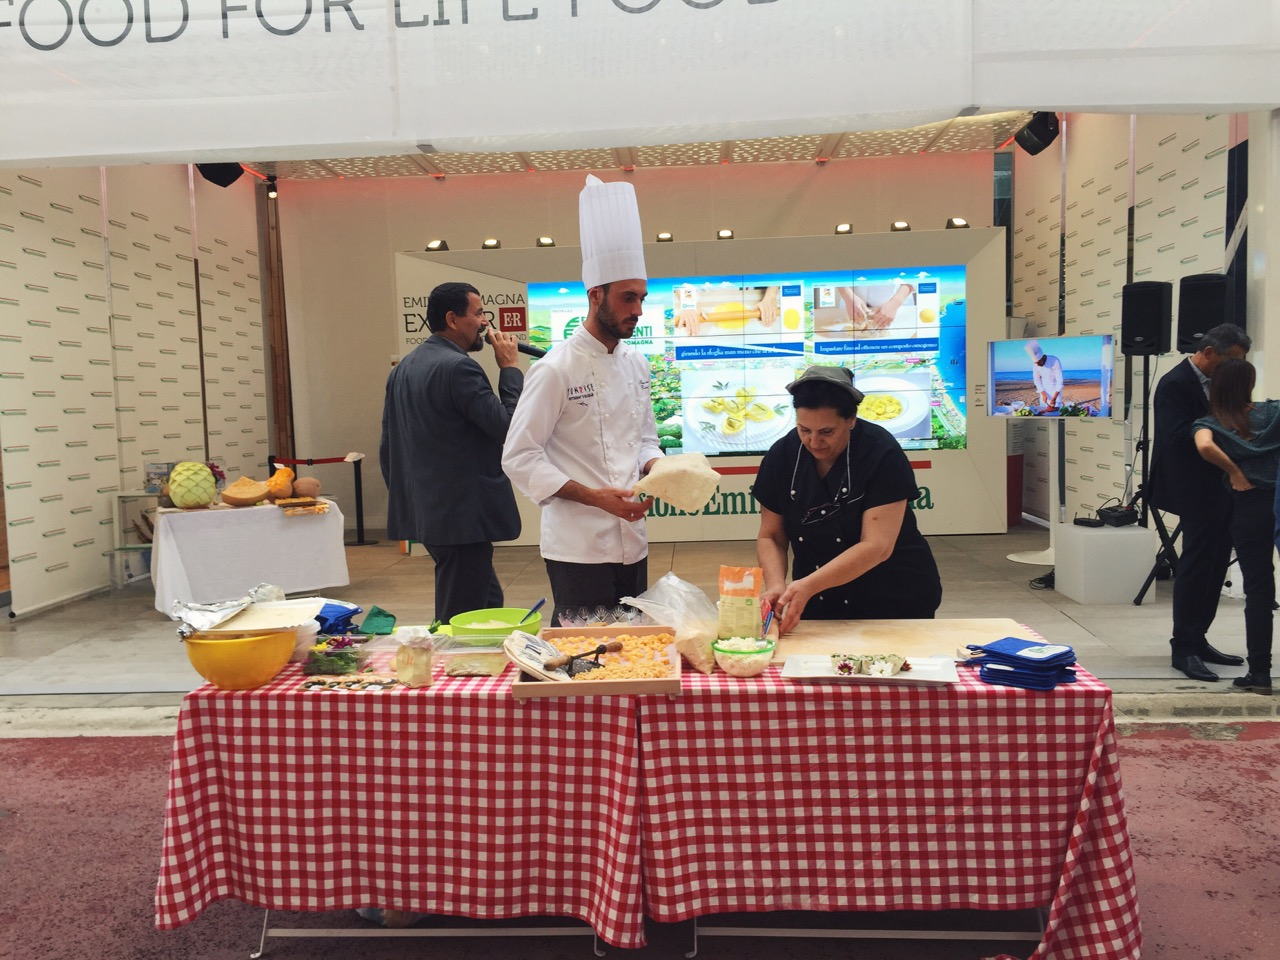 Live cooking demo at Italy's pavilion